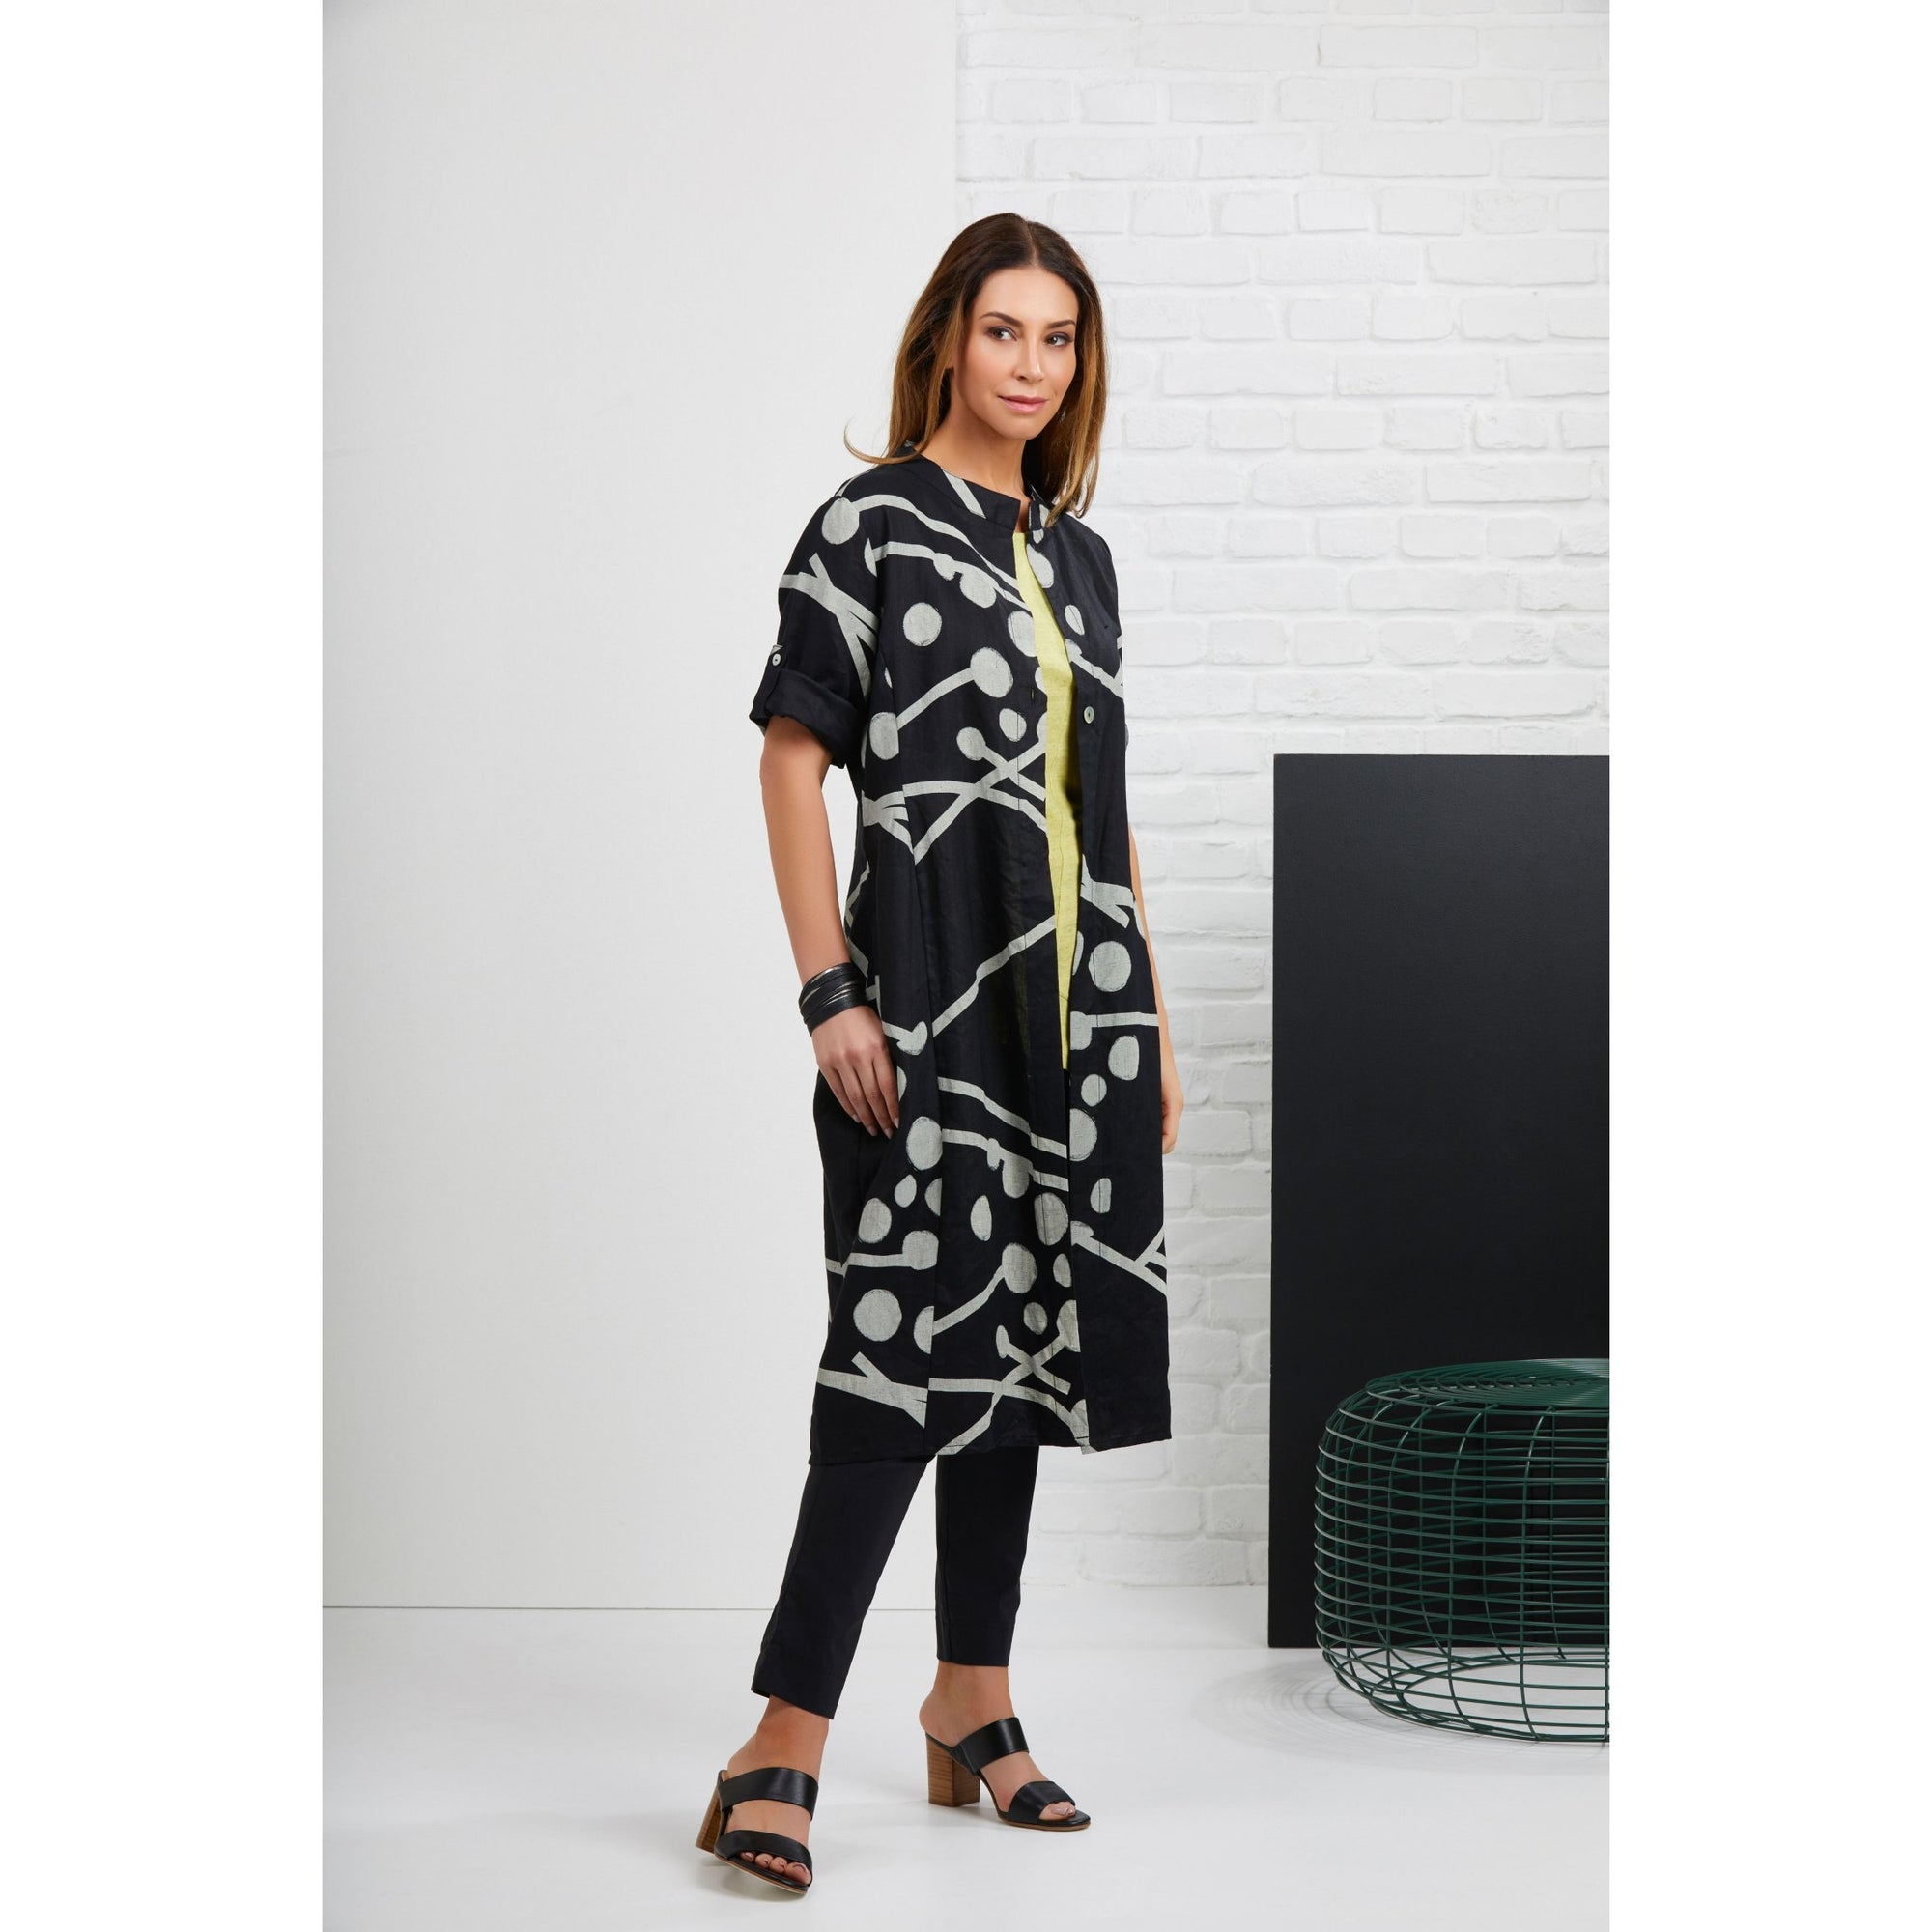 Foil Heavy Hitter Linen Duster Jacket in Kerplunk Black print.